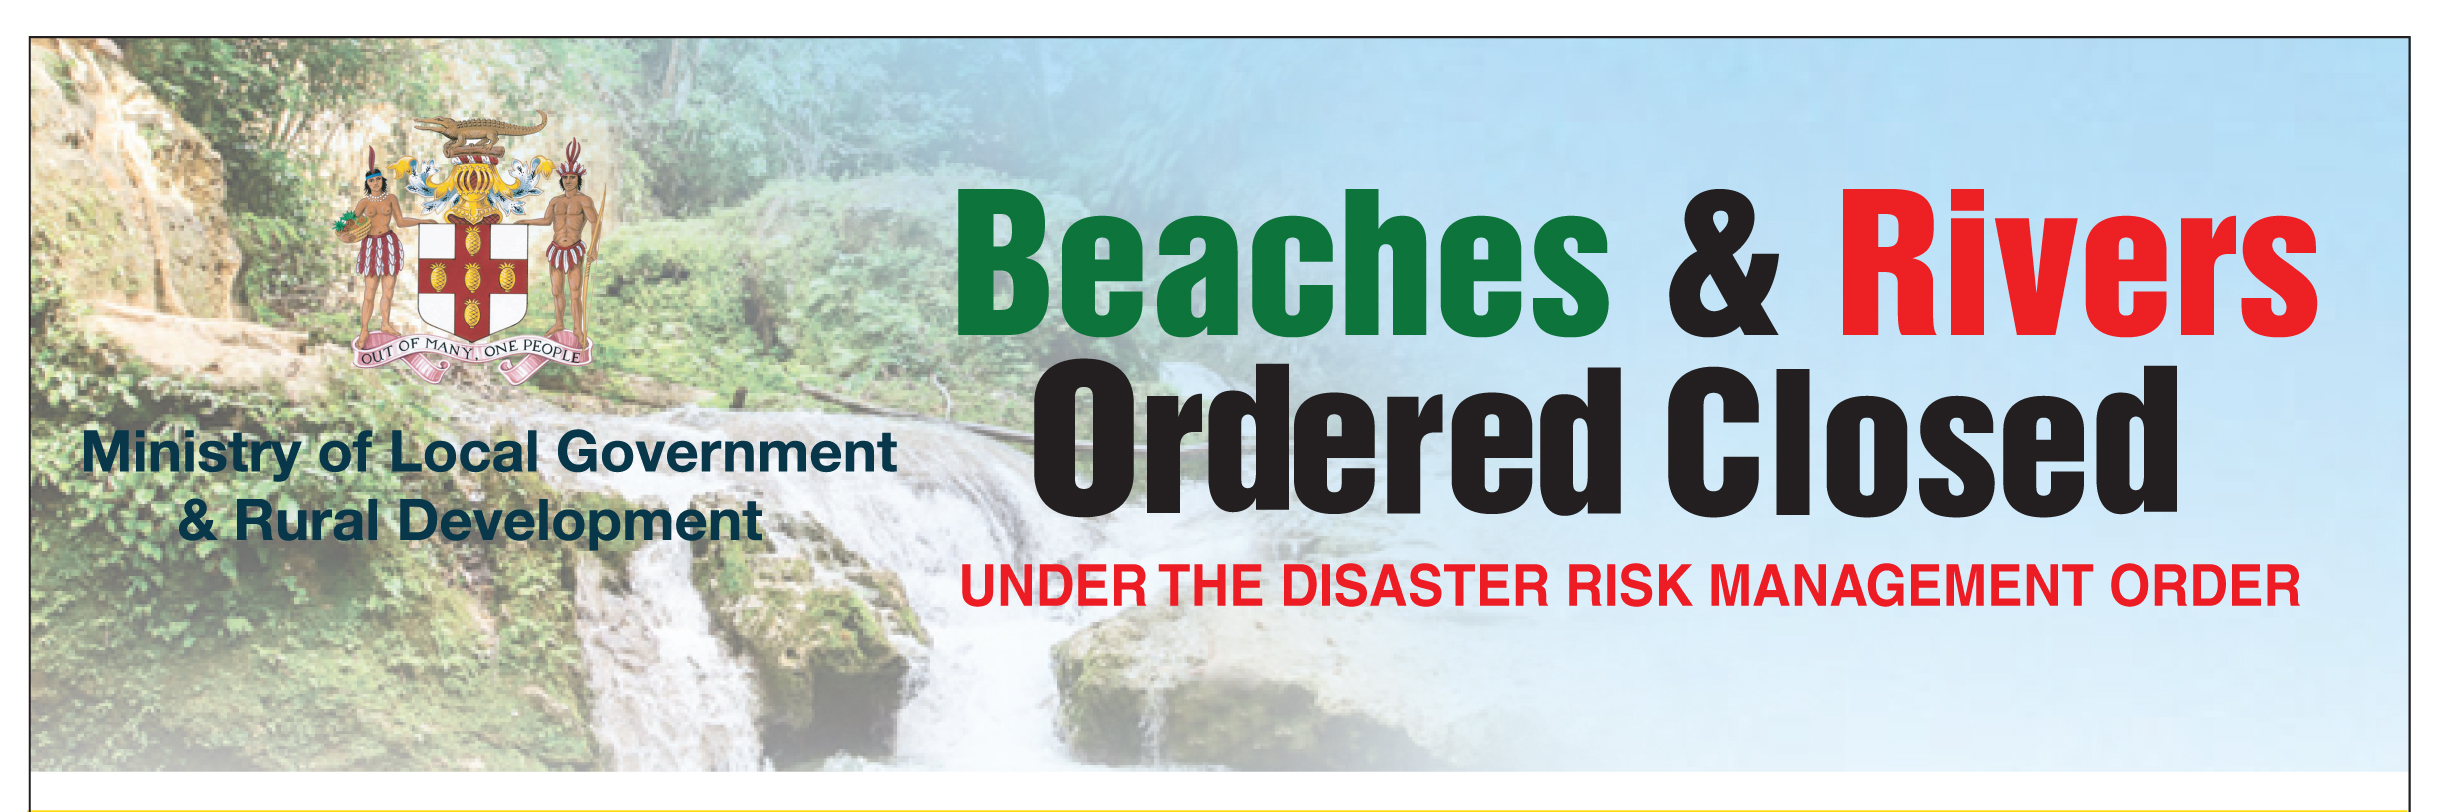 List of Beaches and Rivers ordered closed